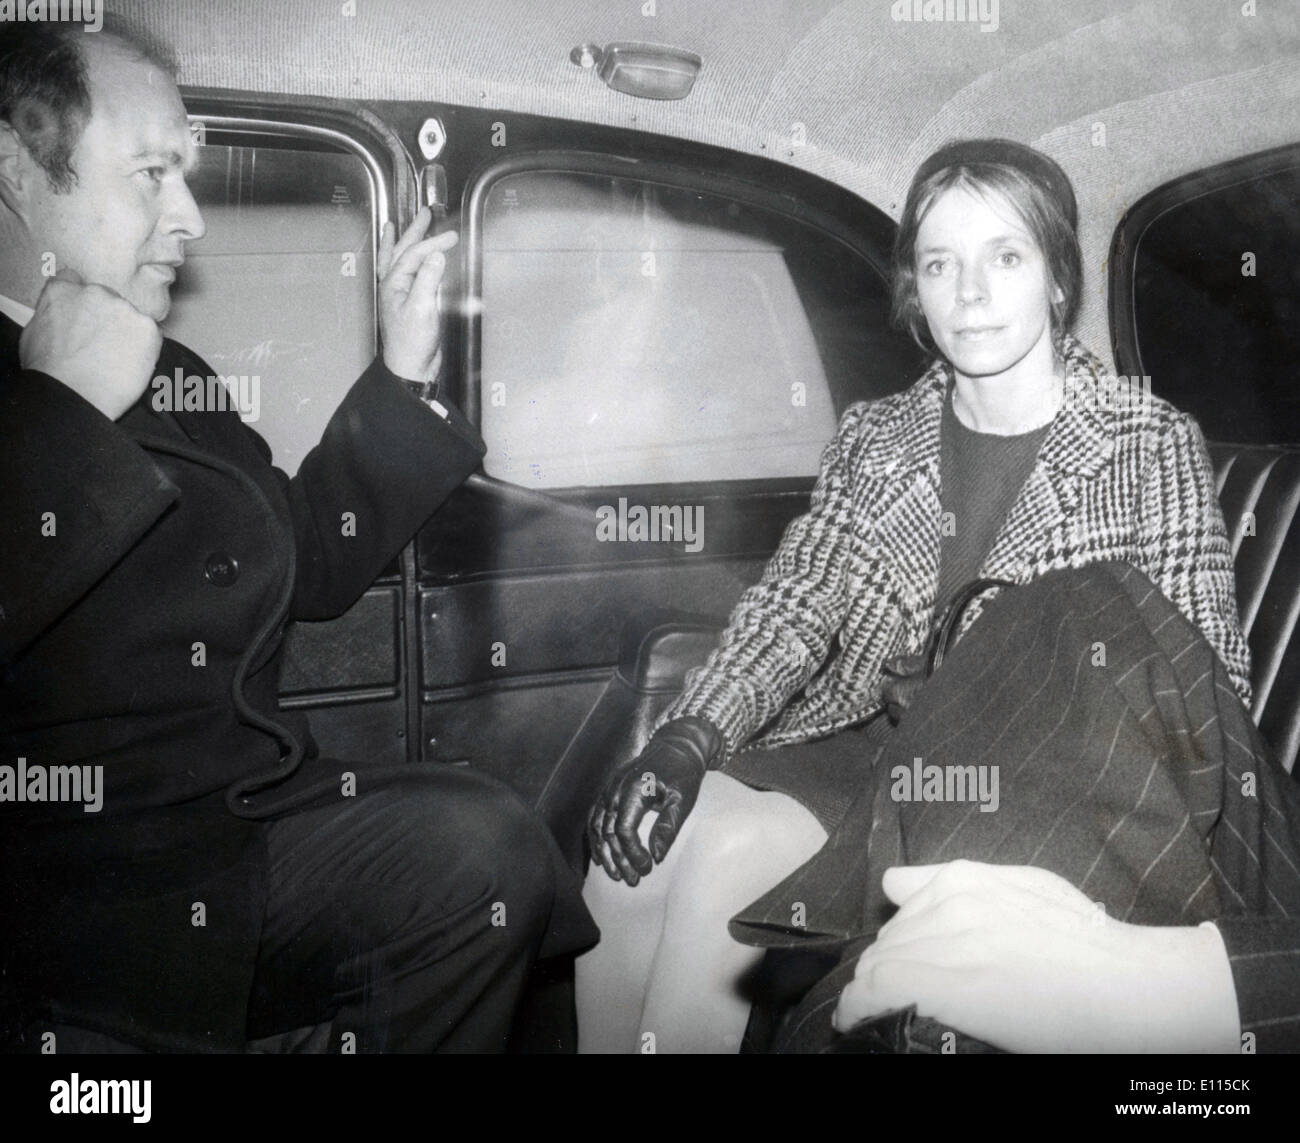 Dec. 22, 1975 - London, England, U.K. - LADY LUCAN accompanied by one of her lawyers leavign by taxi after hear appearance at the compensation Board in Russell Square Today. - Stock Image